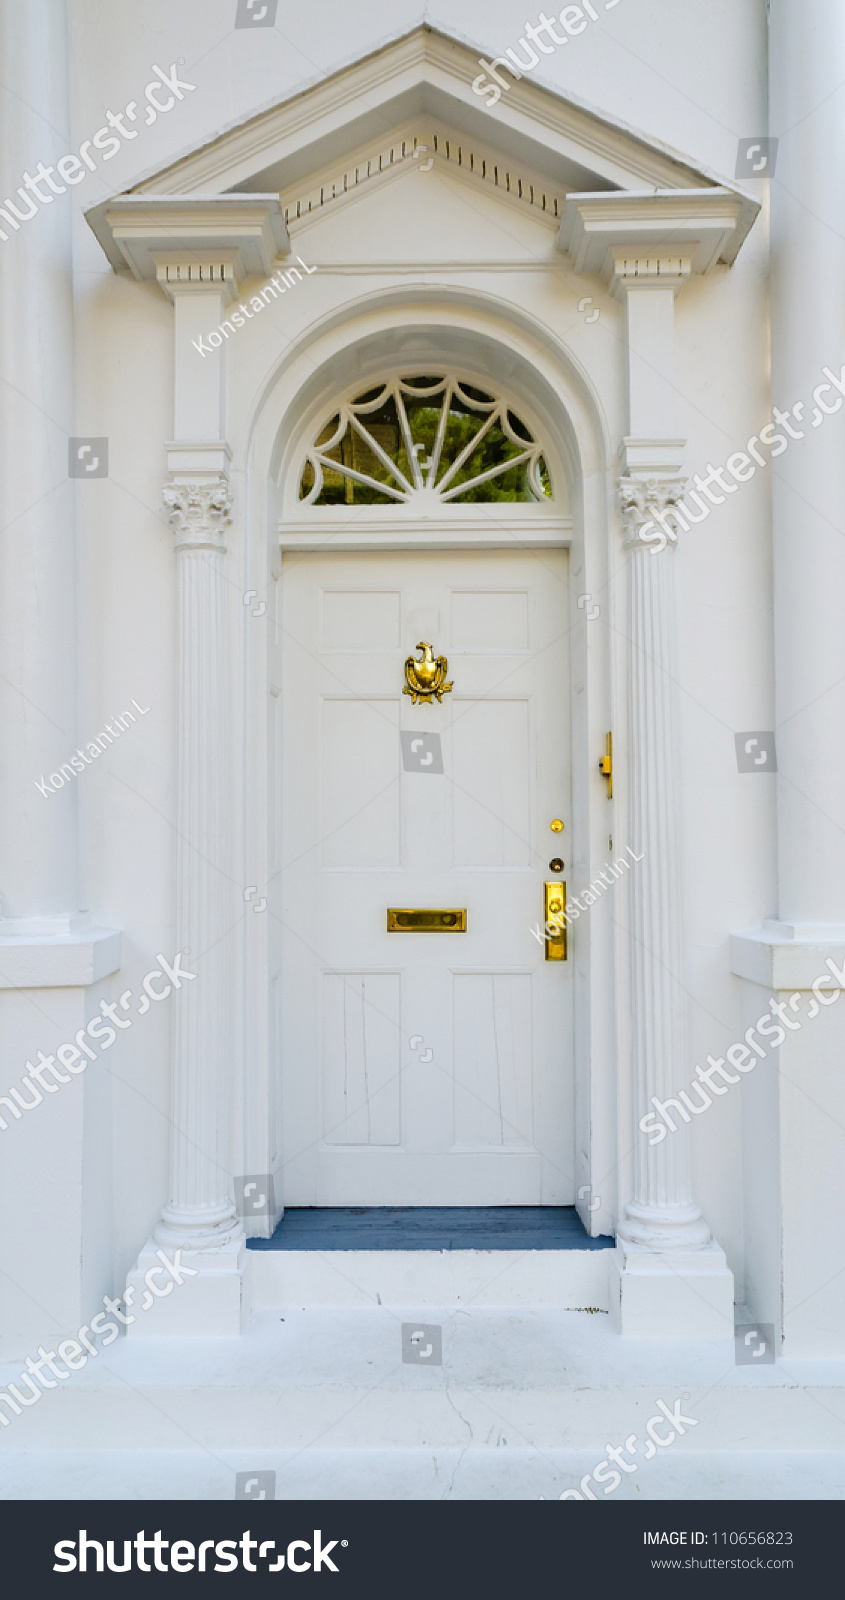 Elegant entrance colonial house stock photo 110656823 shutterstock - Elegant colonial architectural designs ...